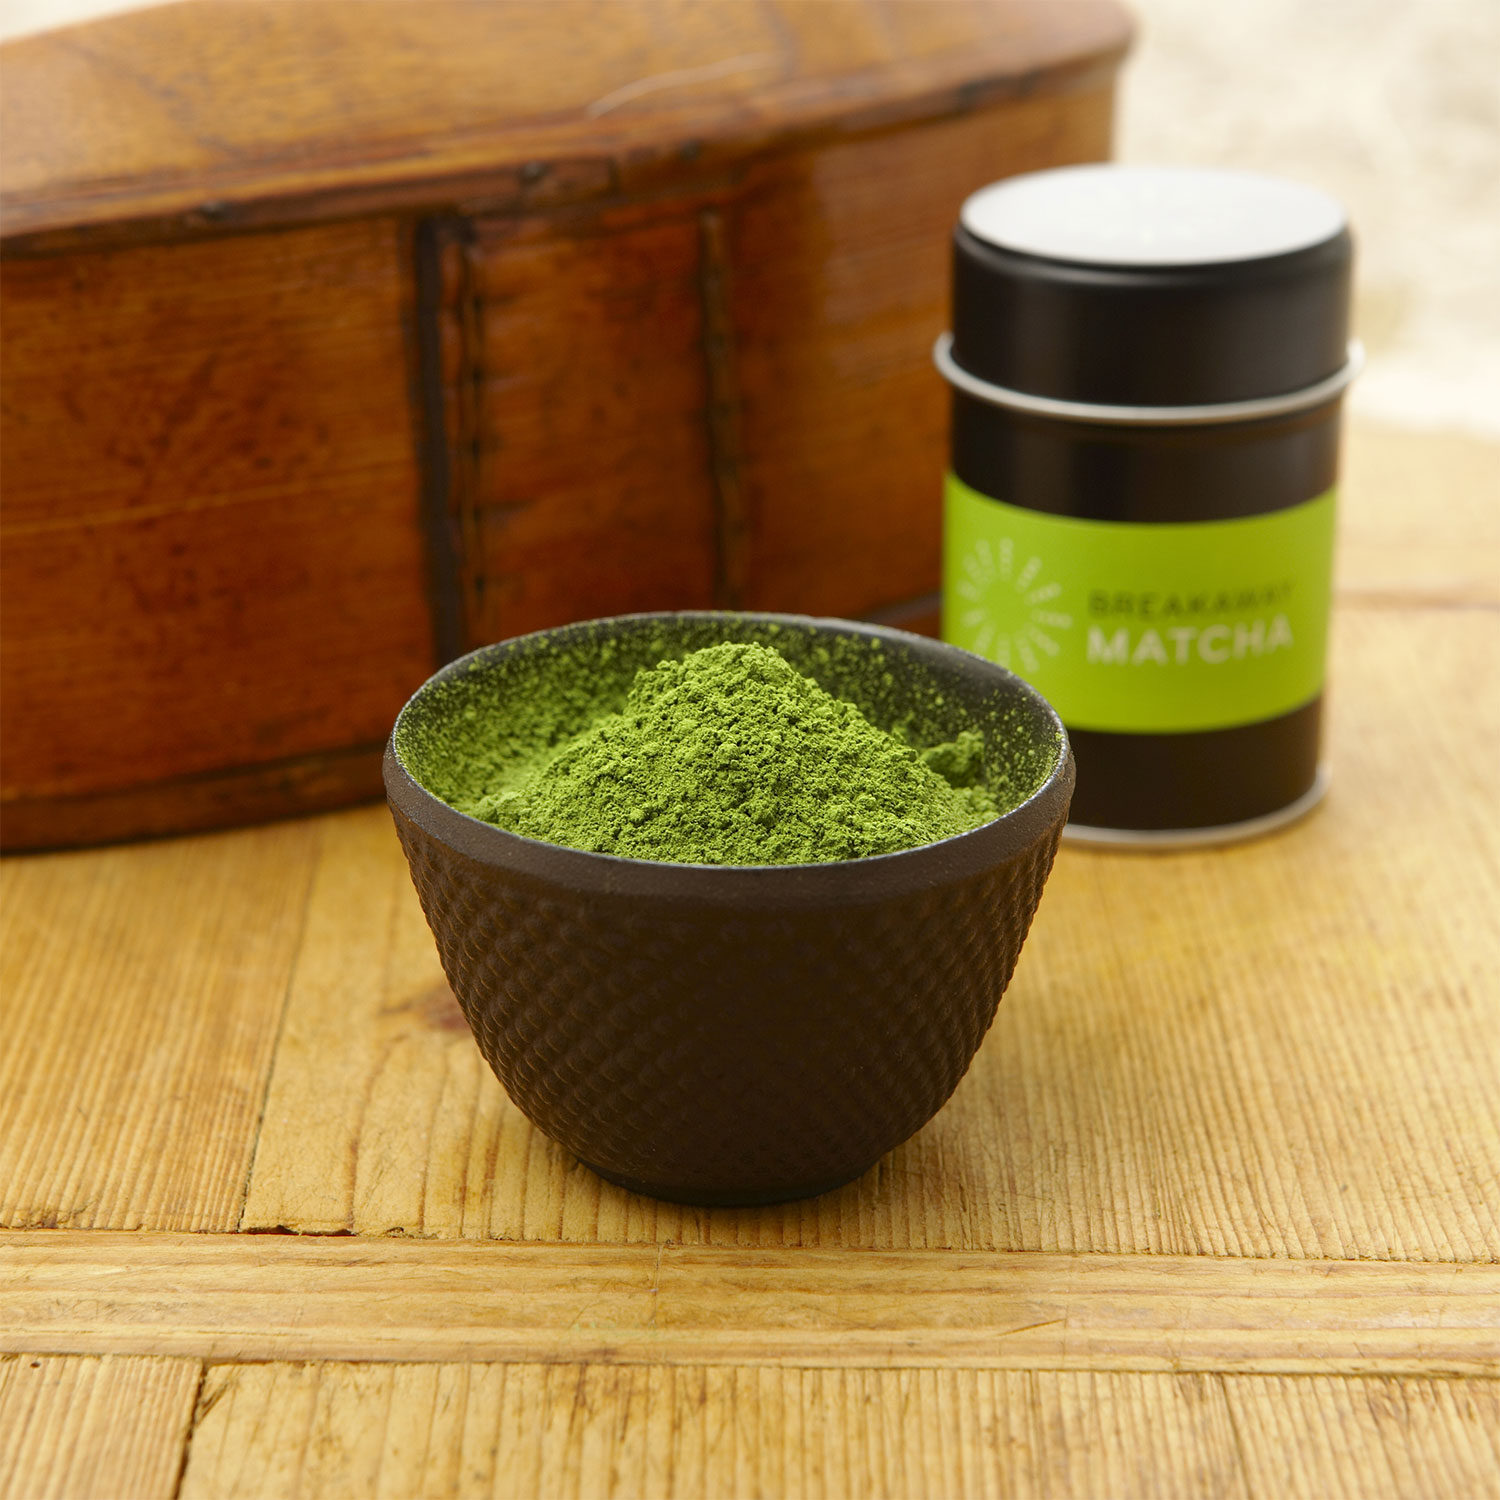 BREAKAWAY MATCHA   Marketing Strategy